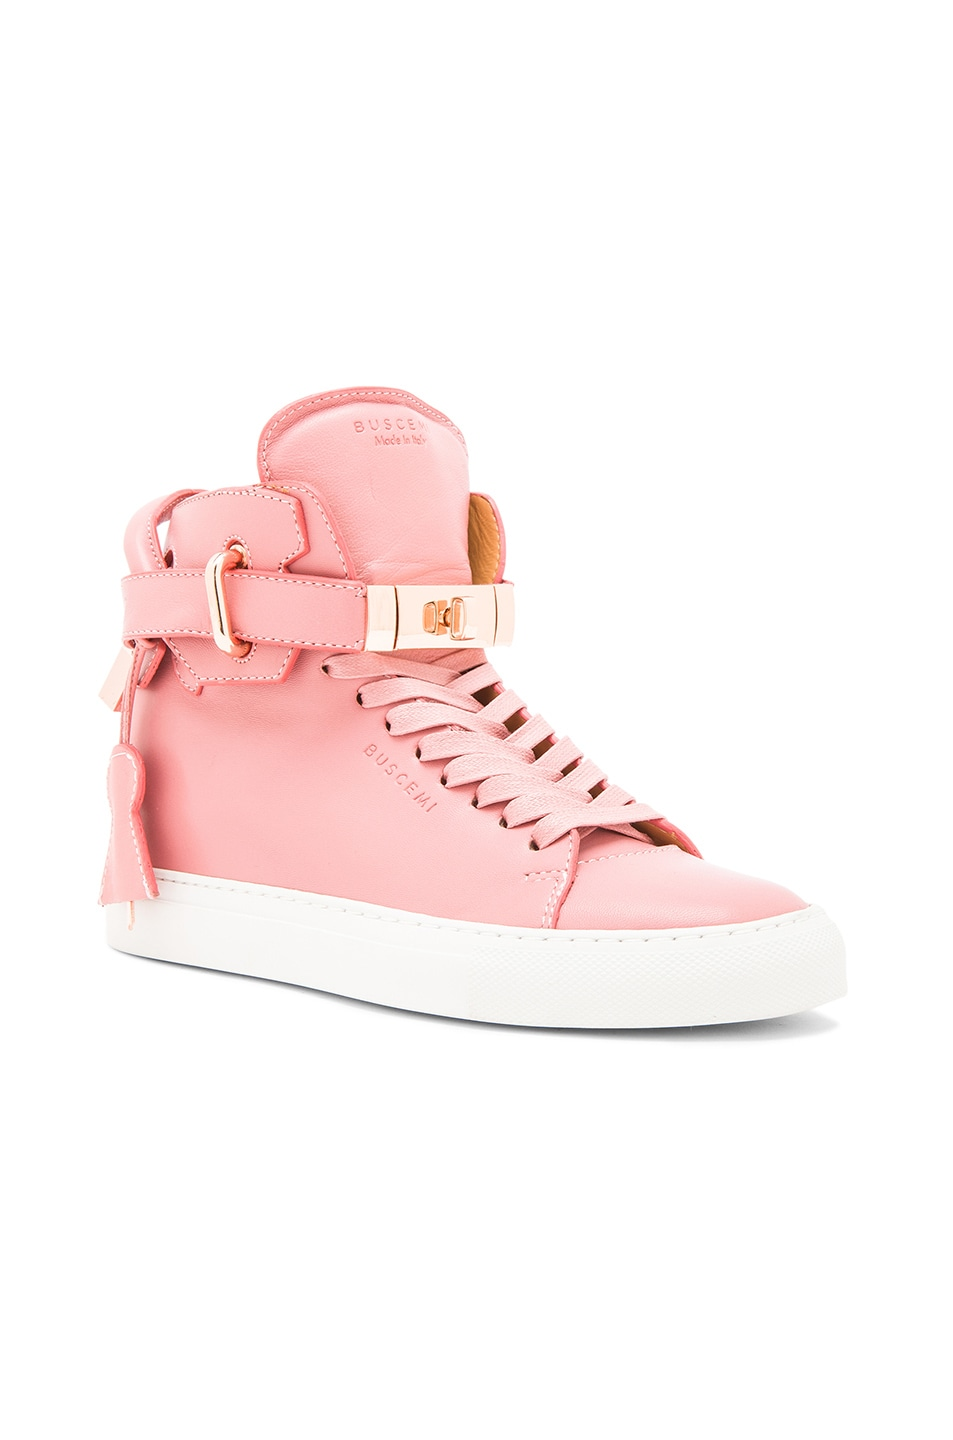 Image 2 of Buscemi 100MM Alta High Top Leather Sneakers in Coral